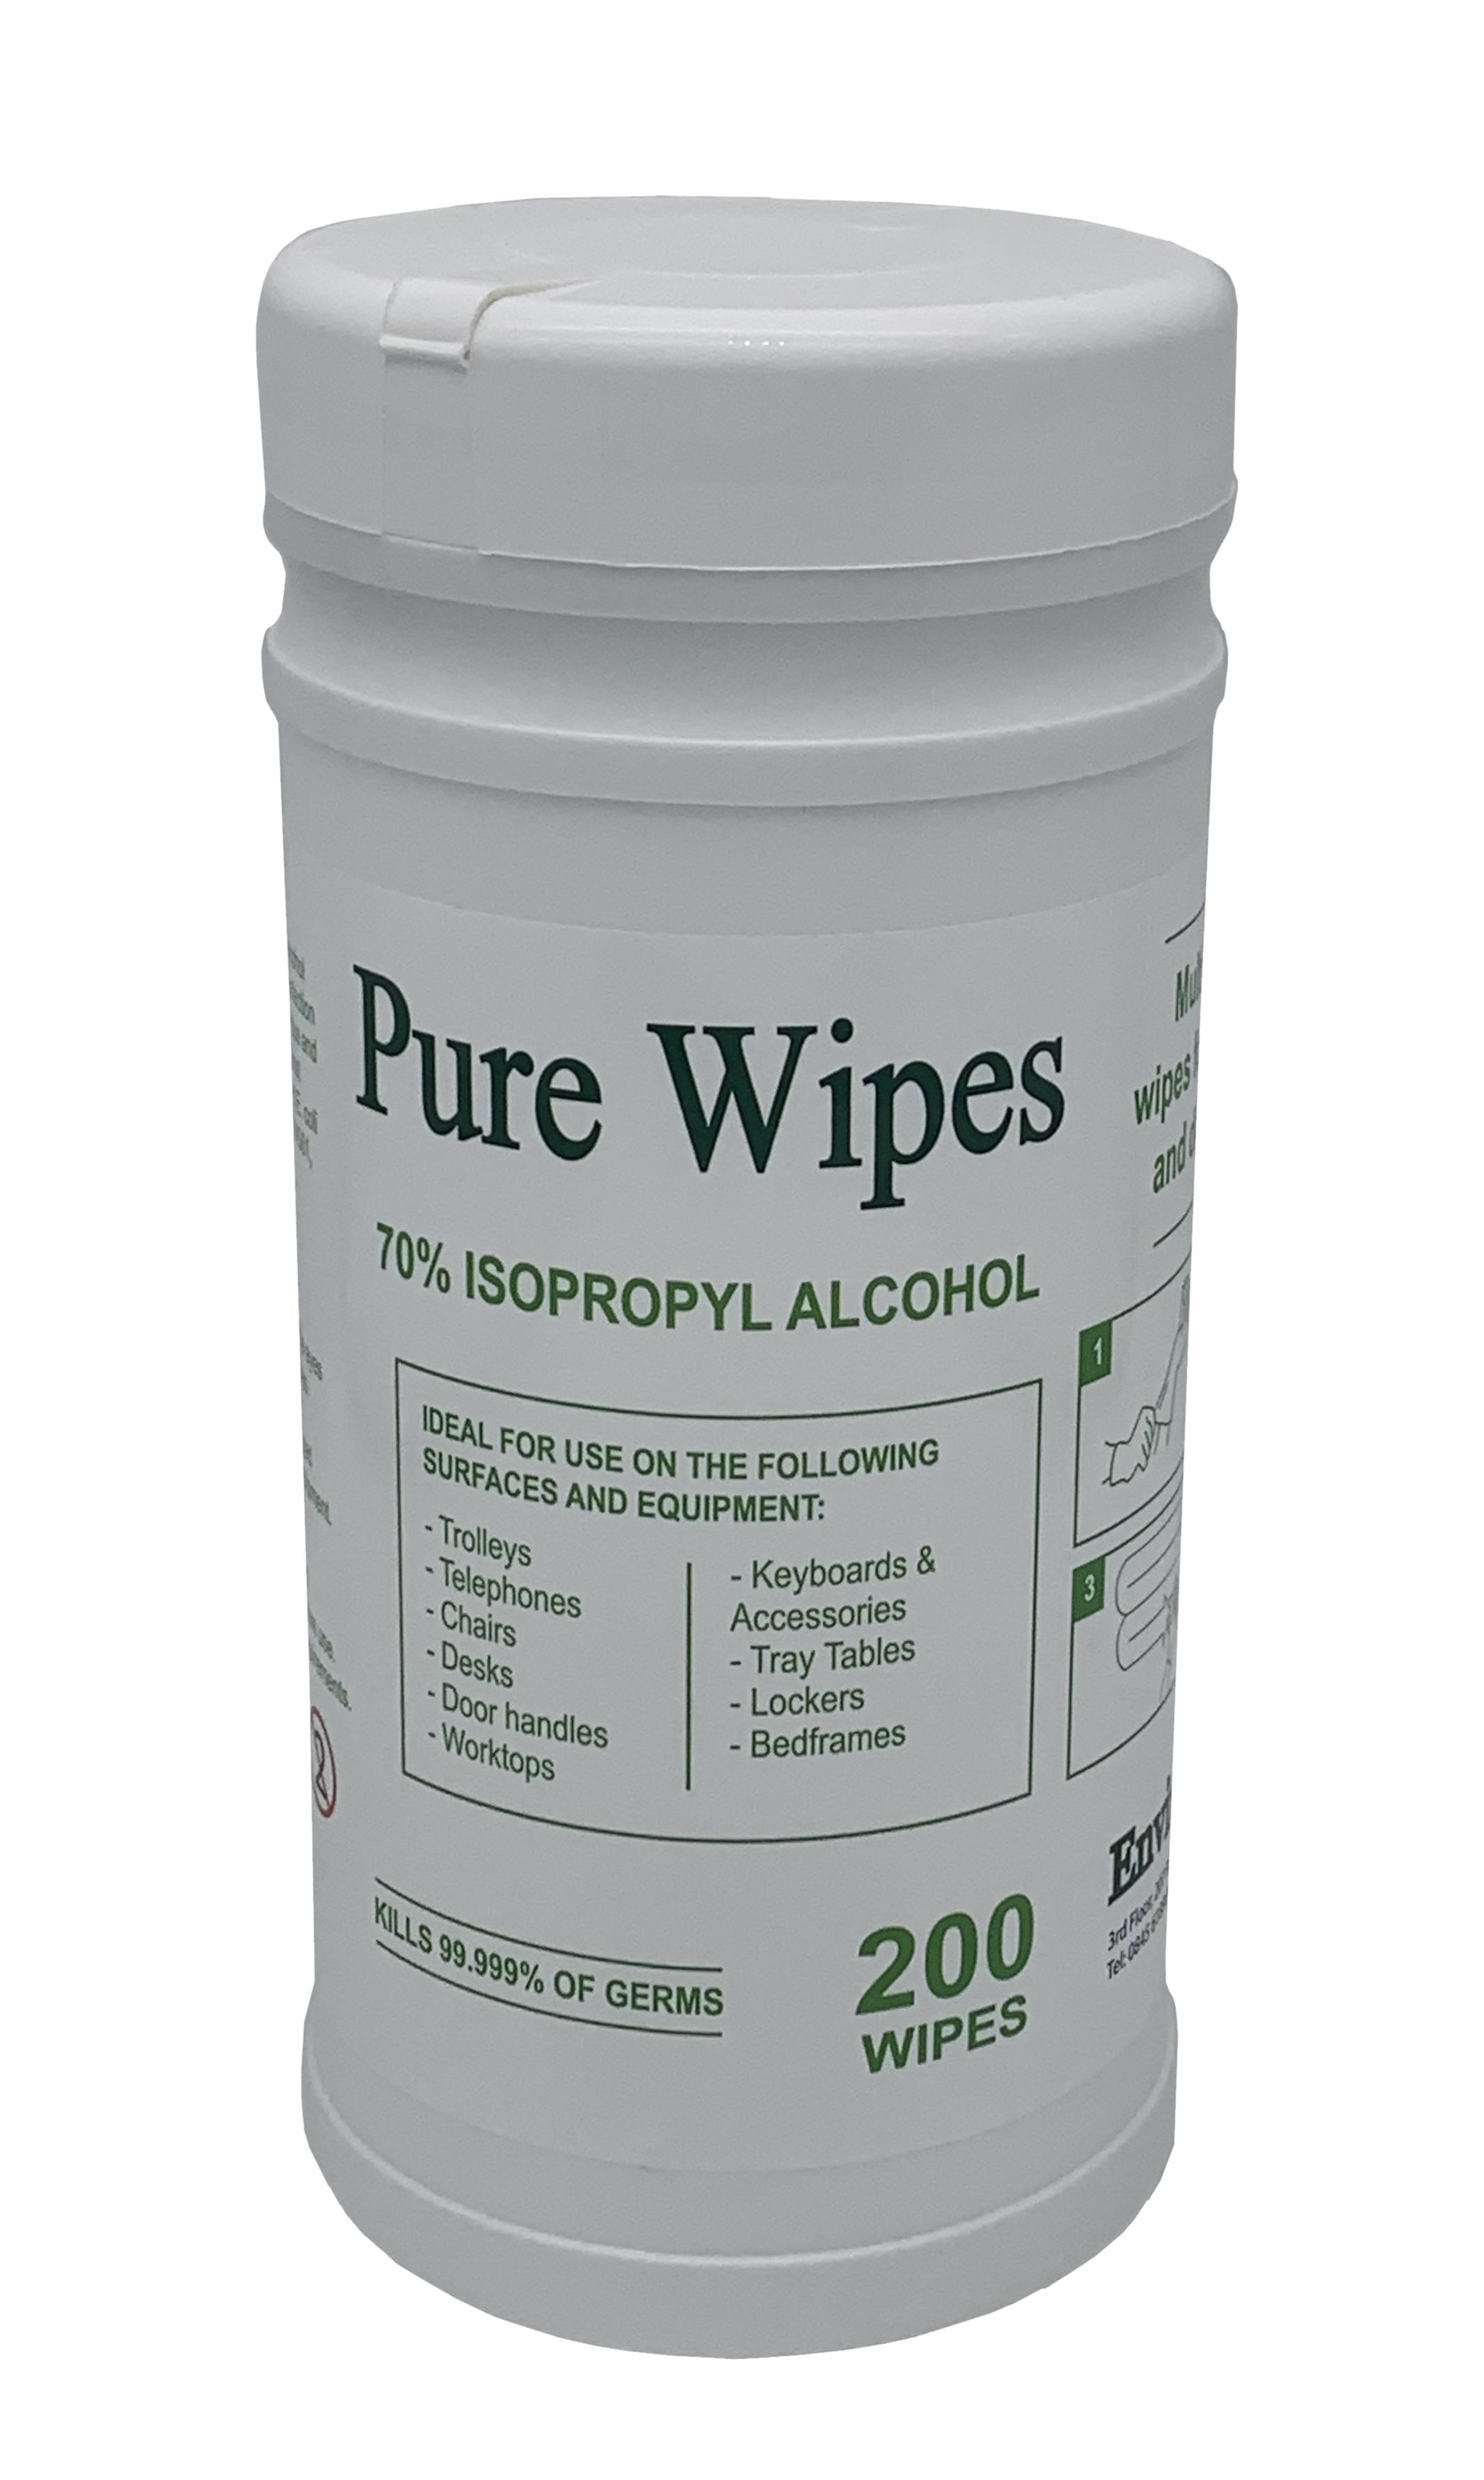 Alcohol Wipes, Disinfectant Wipes, Sanitisng Wipes, 70% Alcohol Wipes, IPA Wipes, Sanitizing Wipes, Sani Wipes